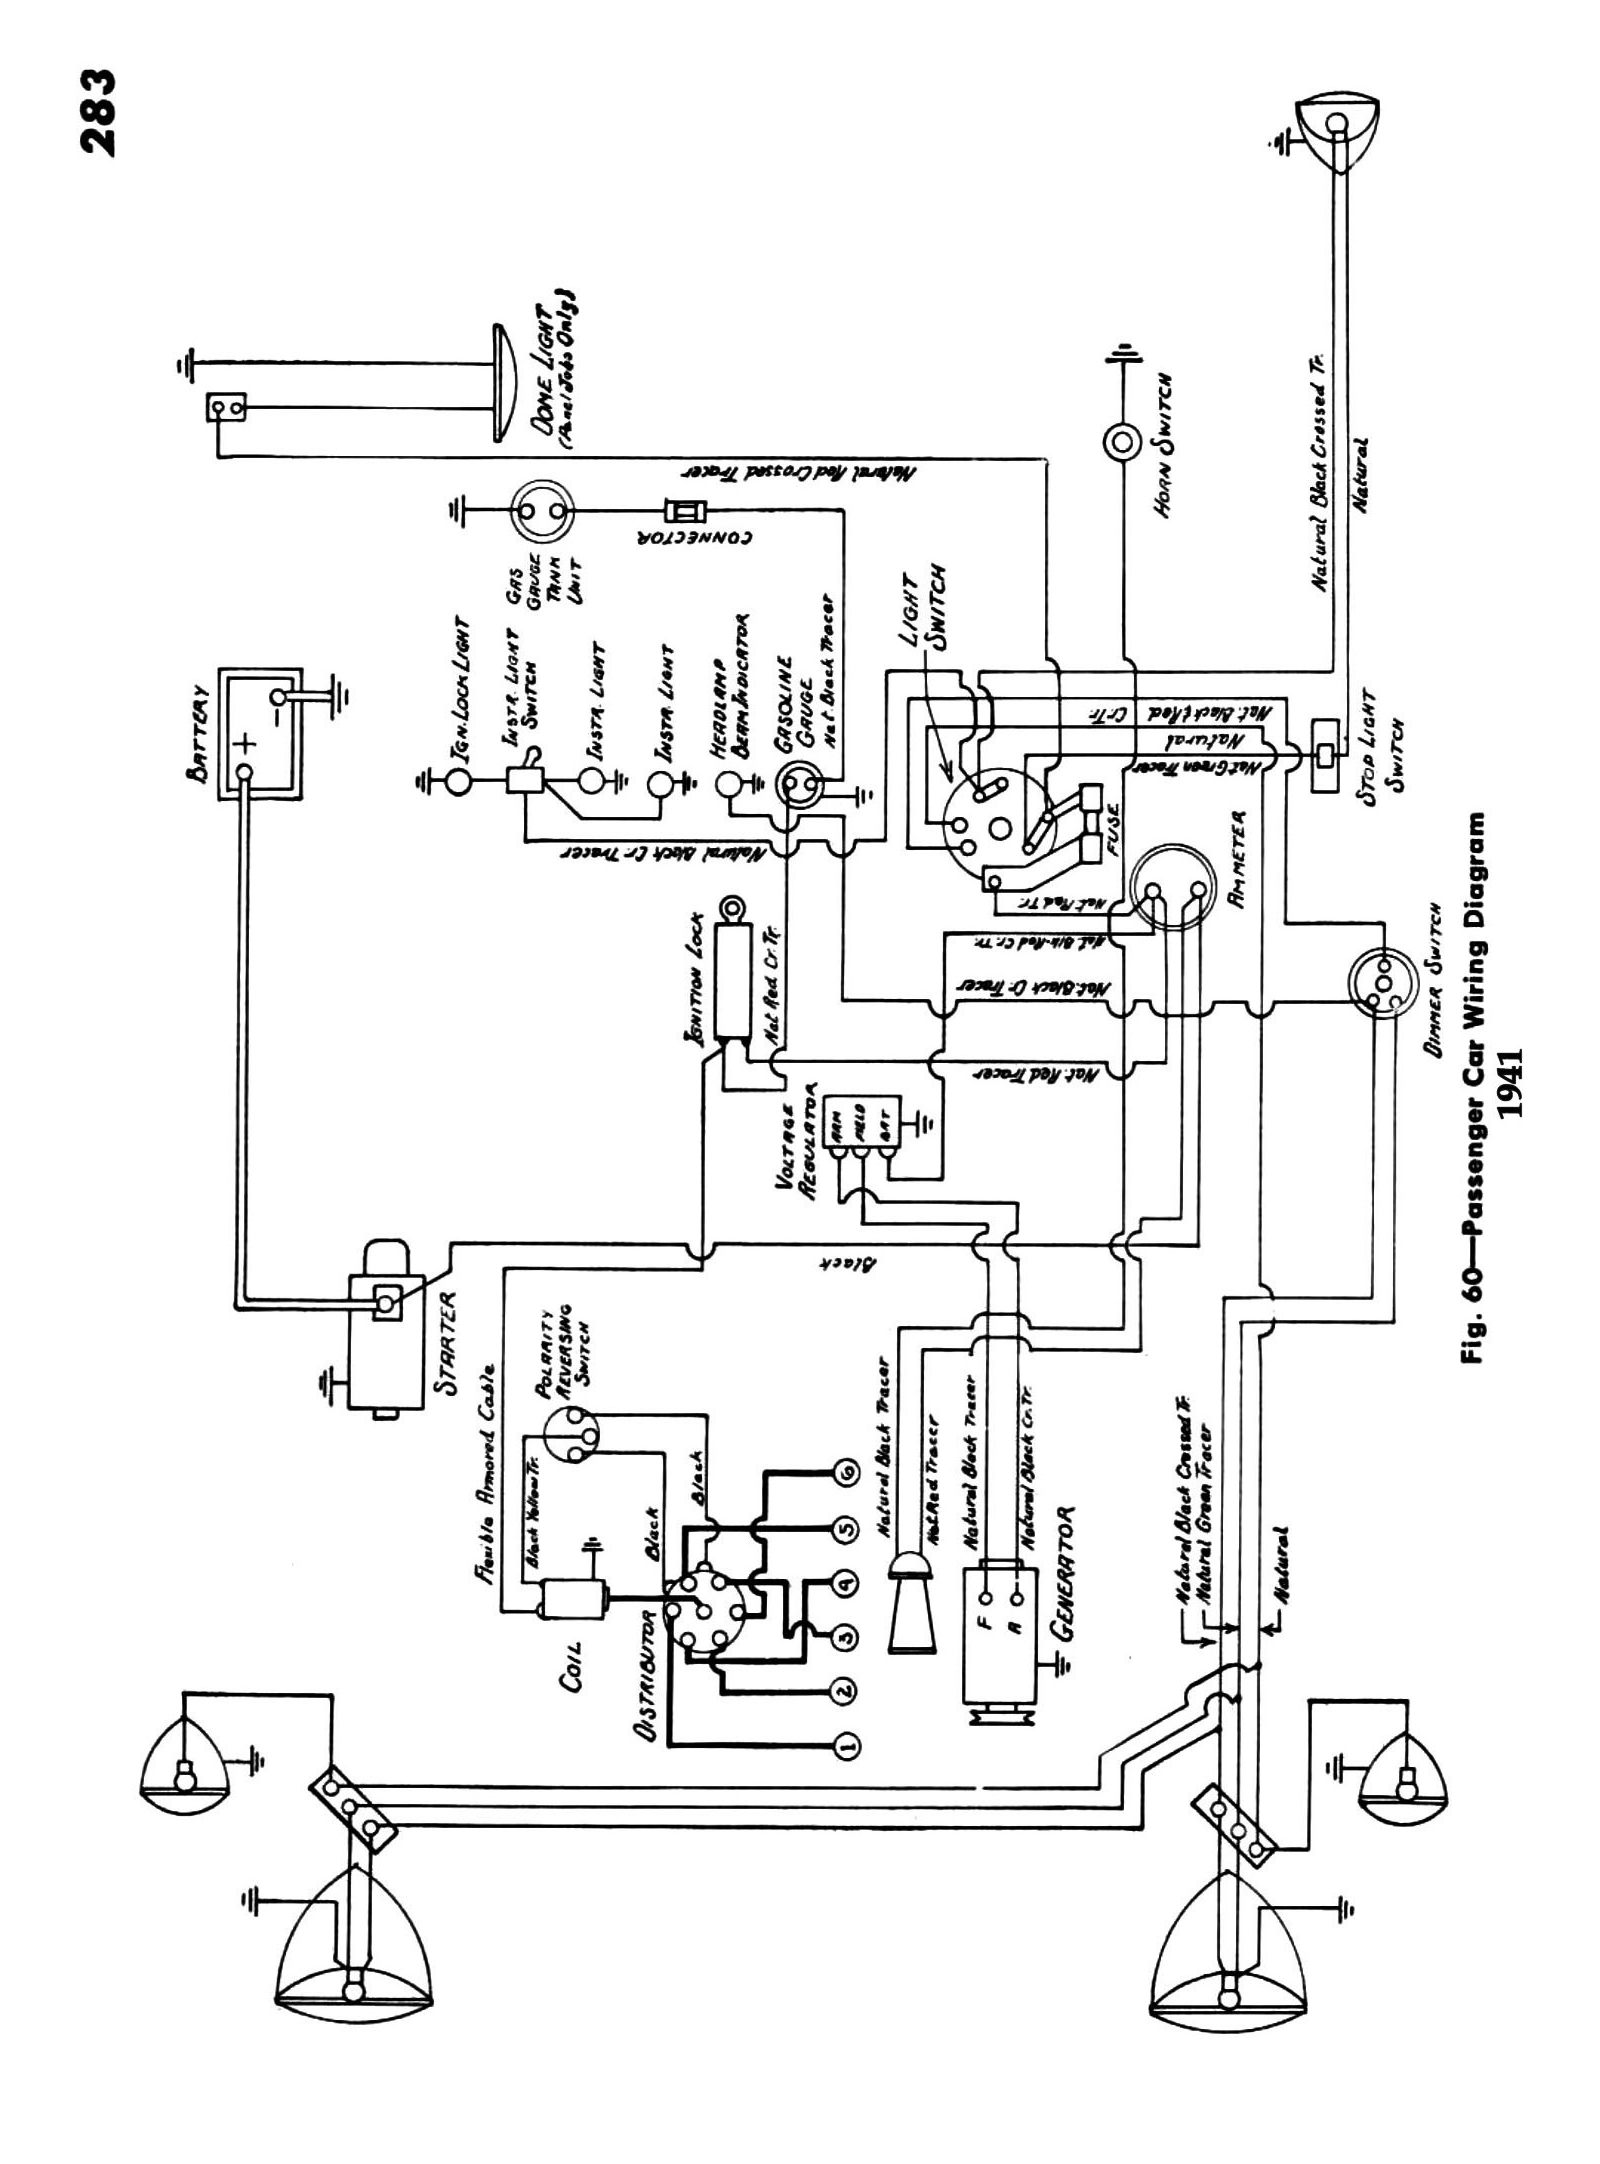 Chevy Colorado Horn Wiring Diagram Library Stereo Diagrams Rh Oldcarmanualproject Com Vortec V8 Engine Swap